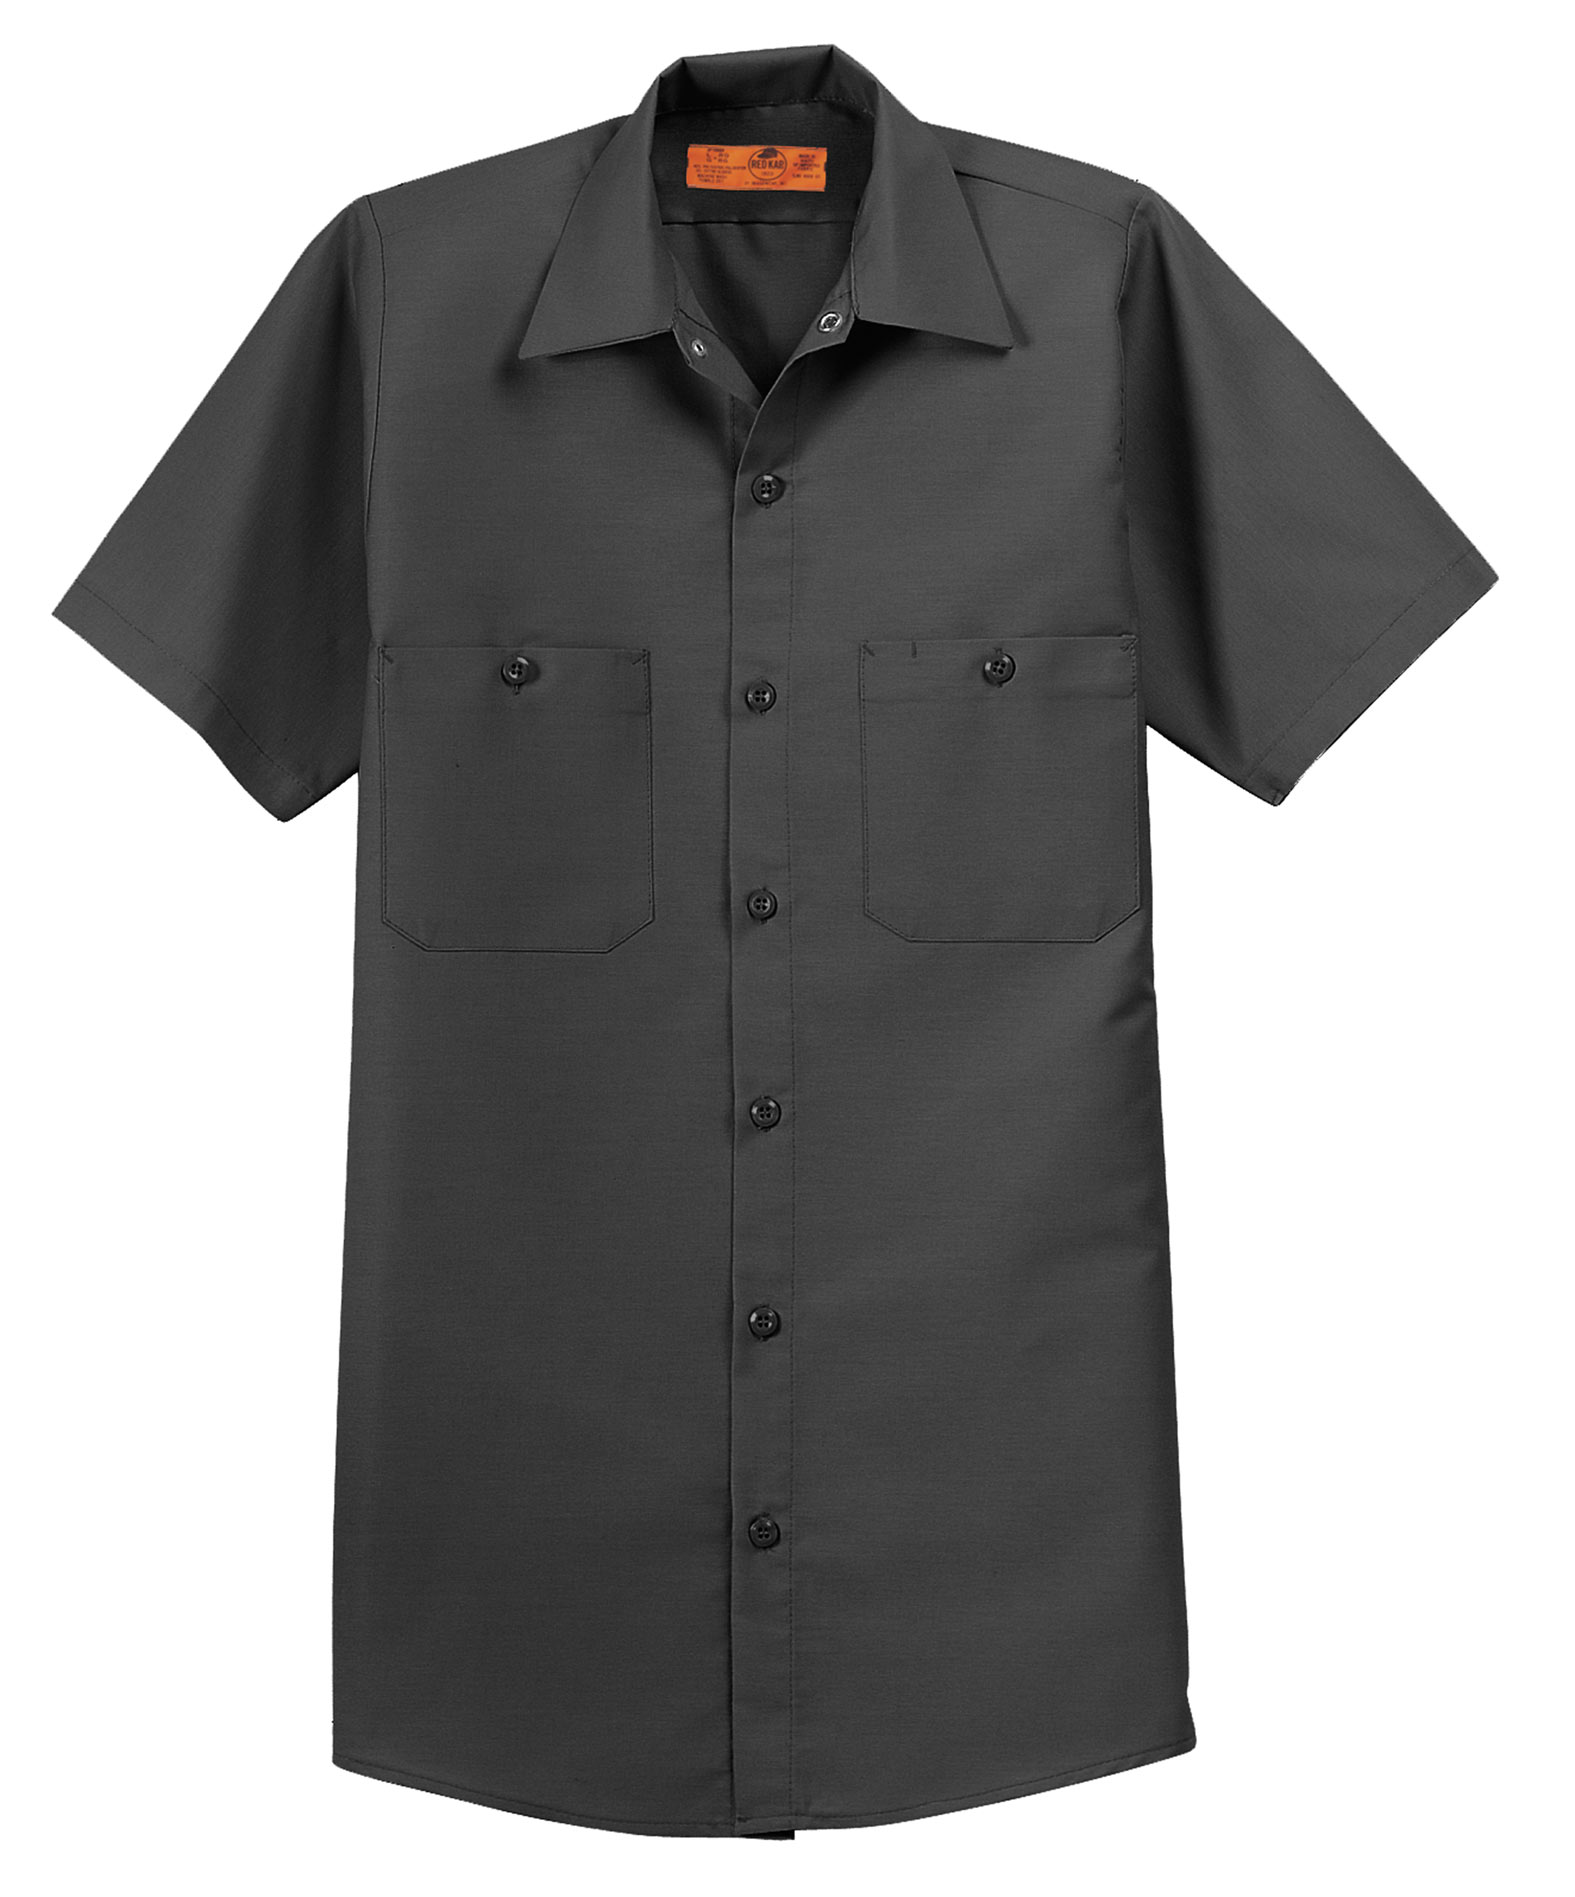 Mens Half Sleeve Industrial Red Kap Work Shirt